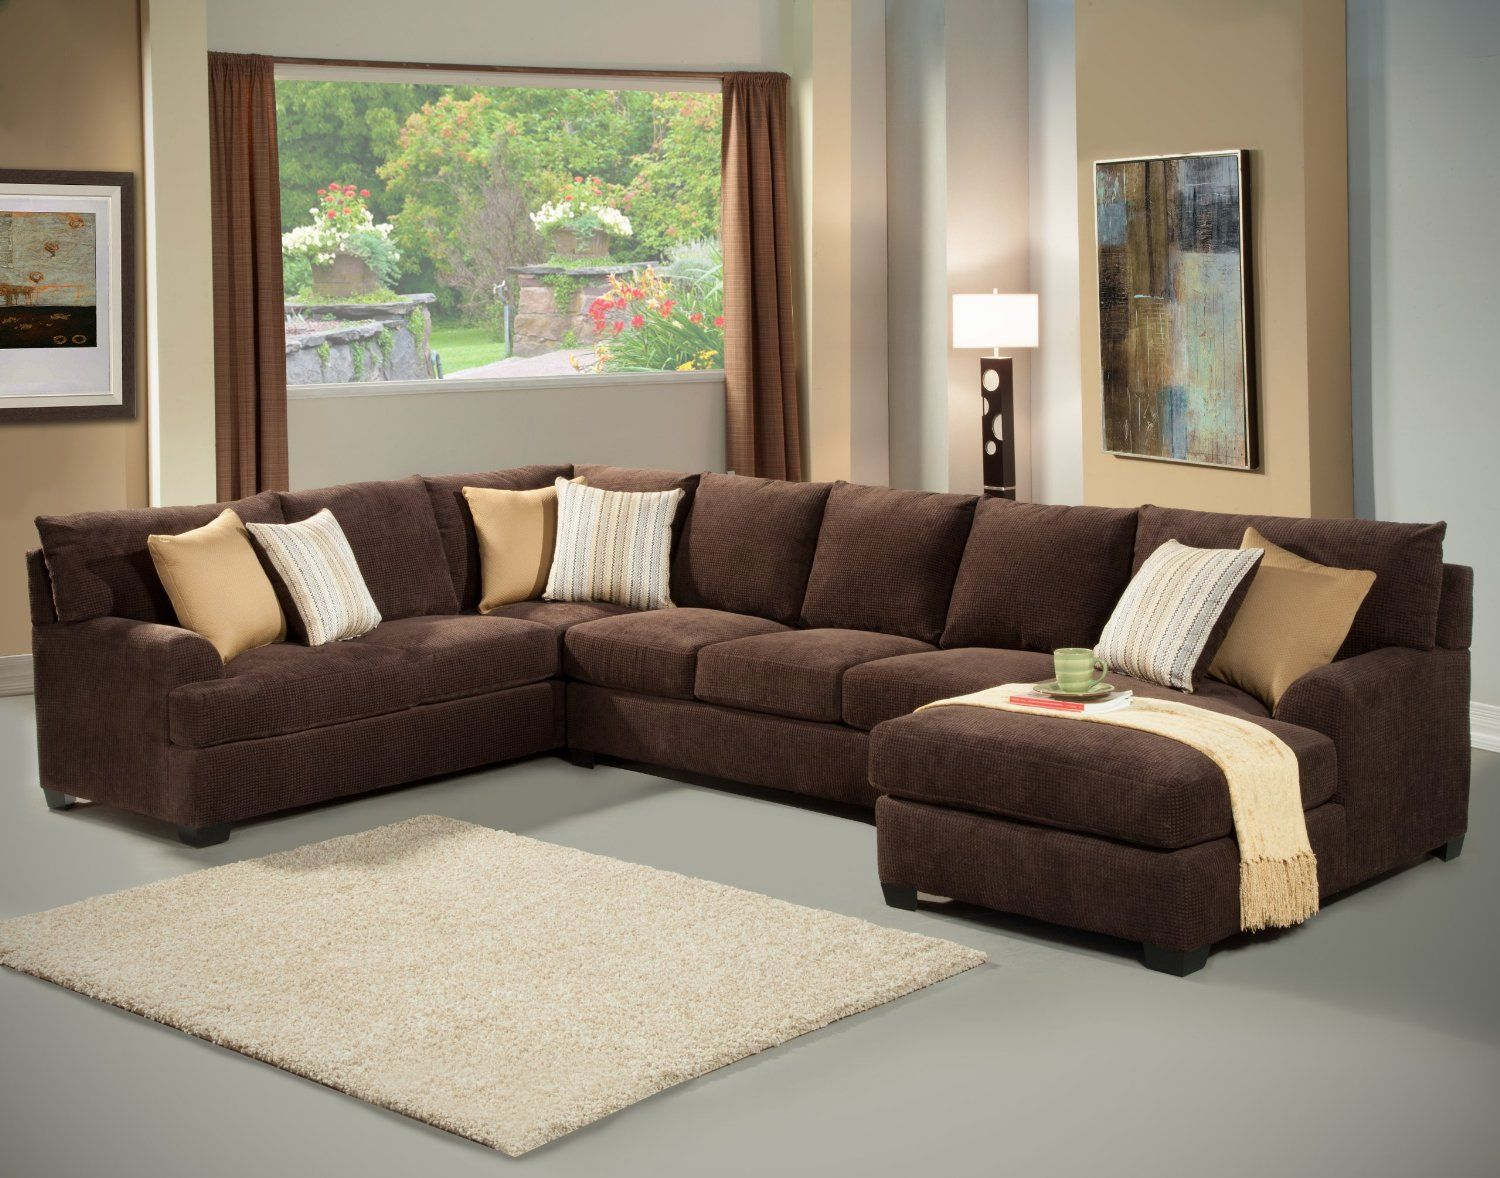 sofa best grey poundex wayfair sellers retro amazon sectional modern